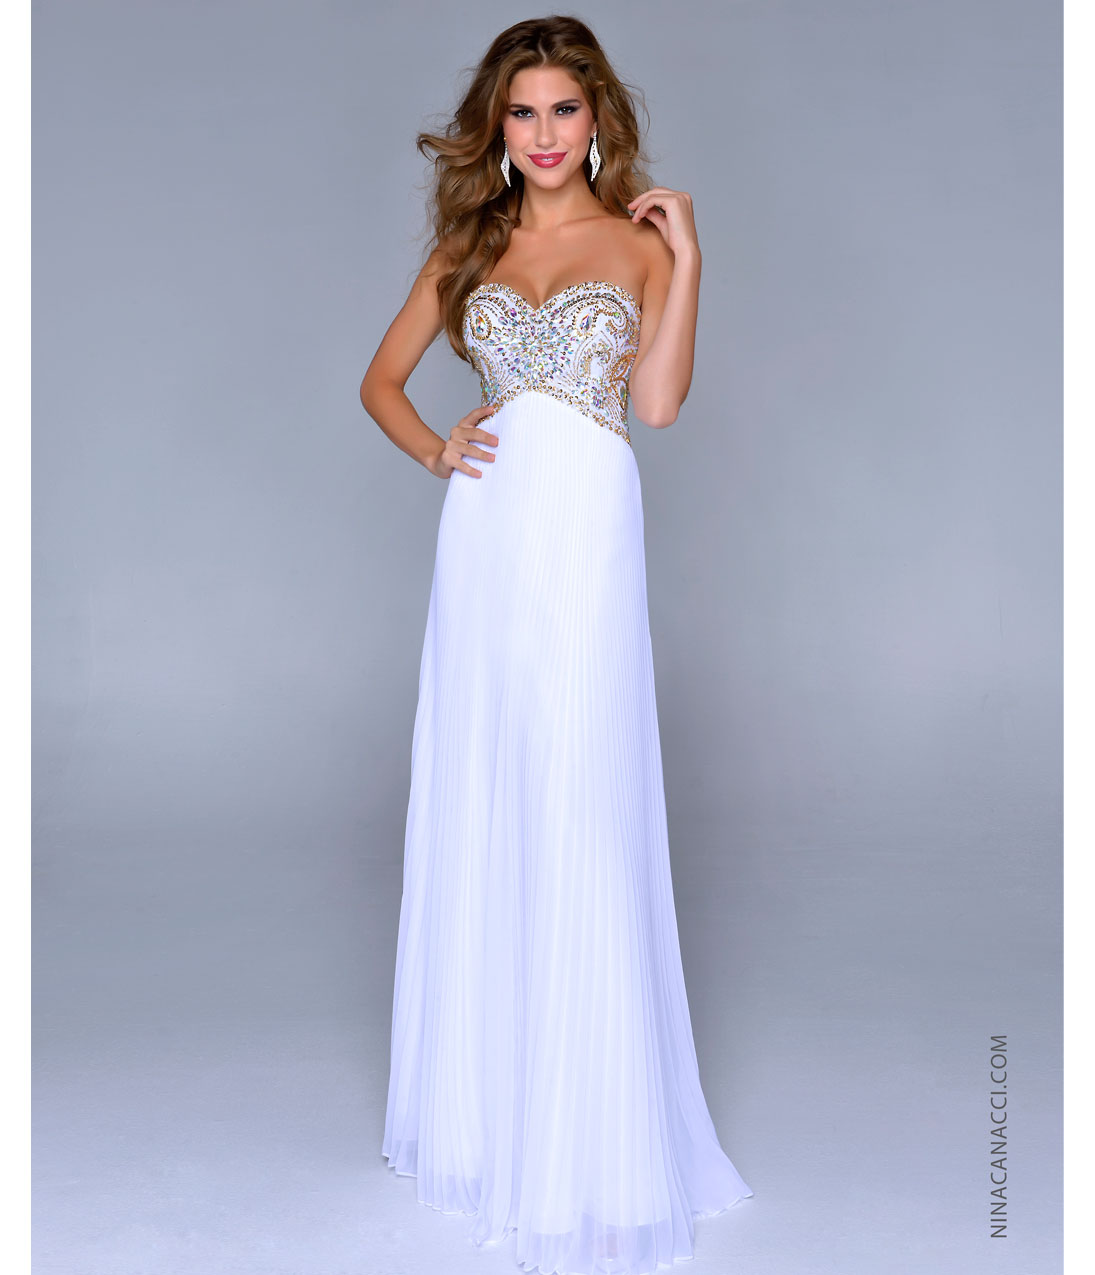 Nina Canacci 2014 Prom Dresses - White Gold Pleated Chiffon & Beaded Sweetheart Prom Gown - Unique Vintage - Prom dresses, retro dresses, retro swimsuits.